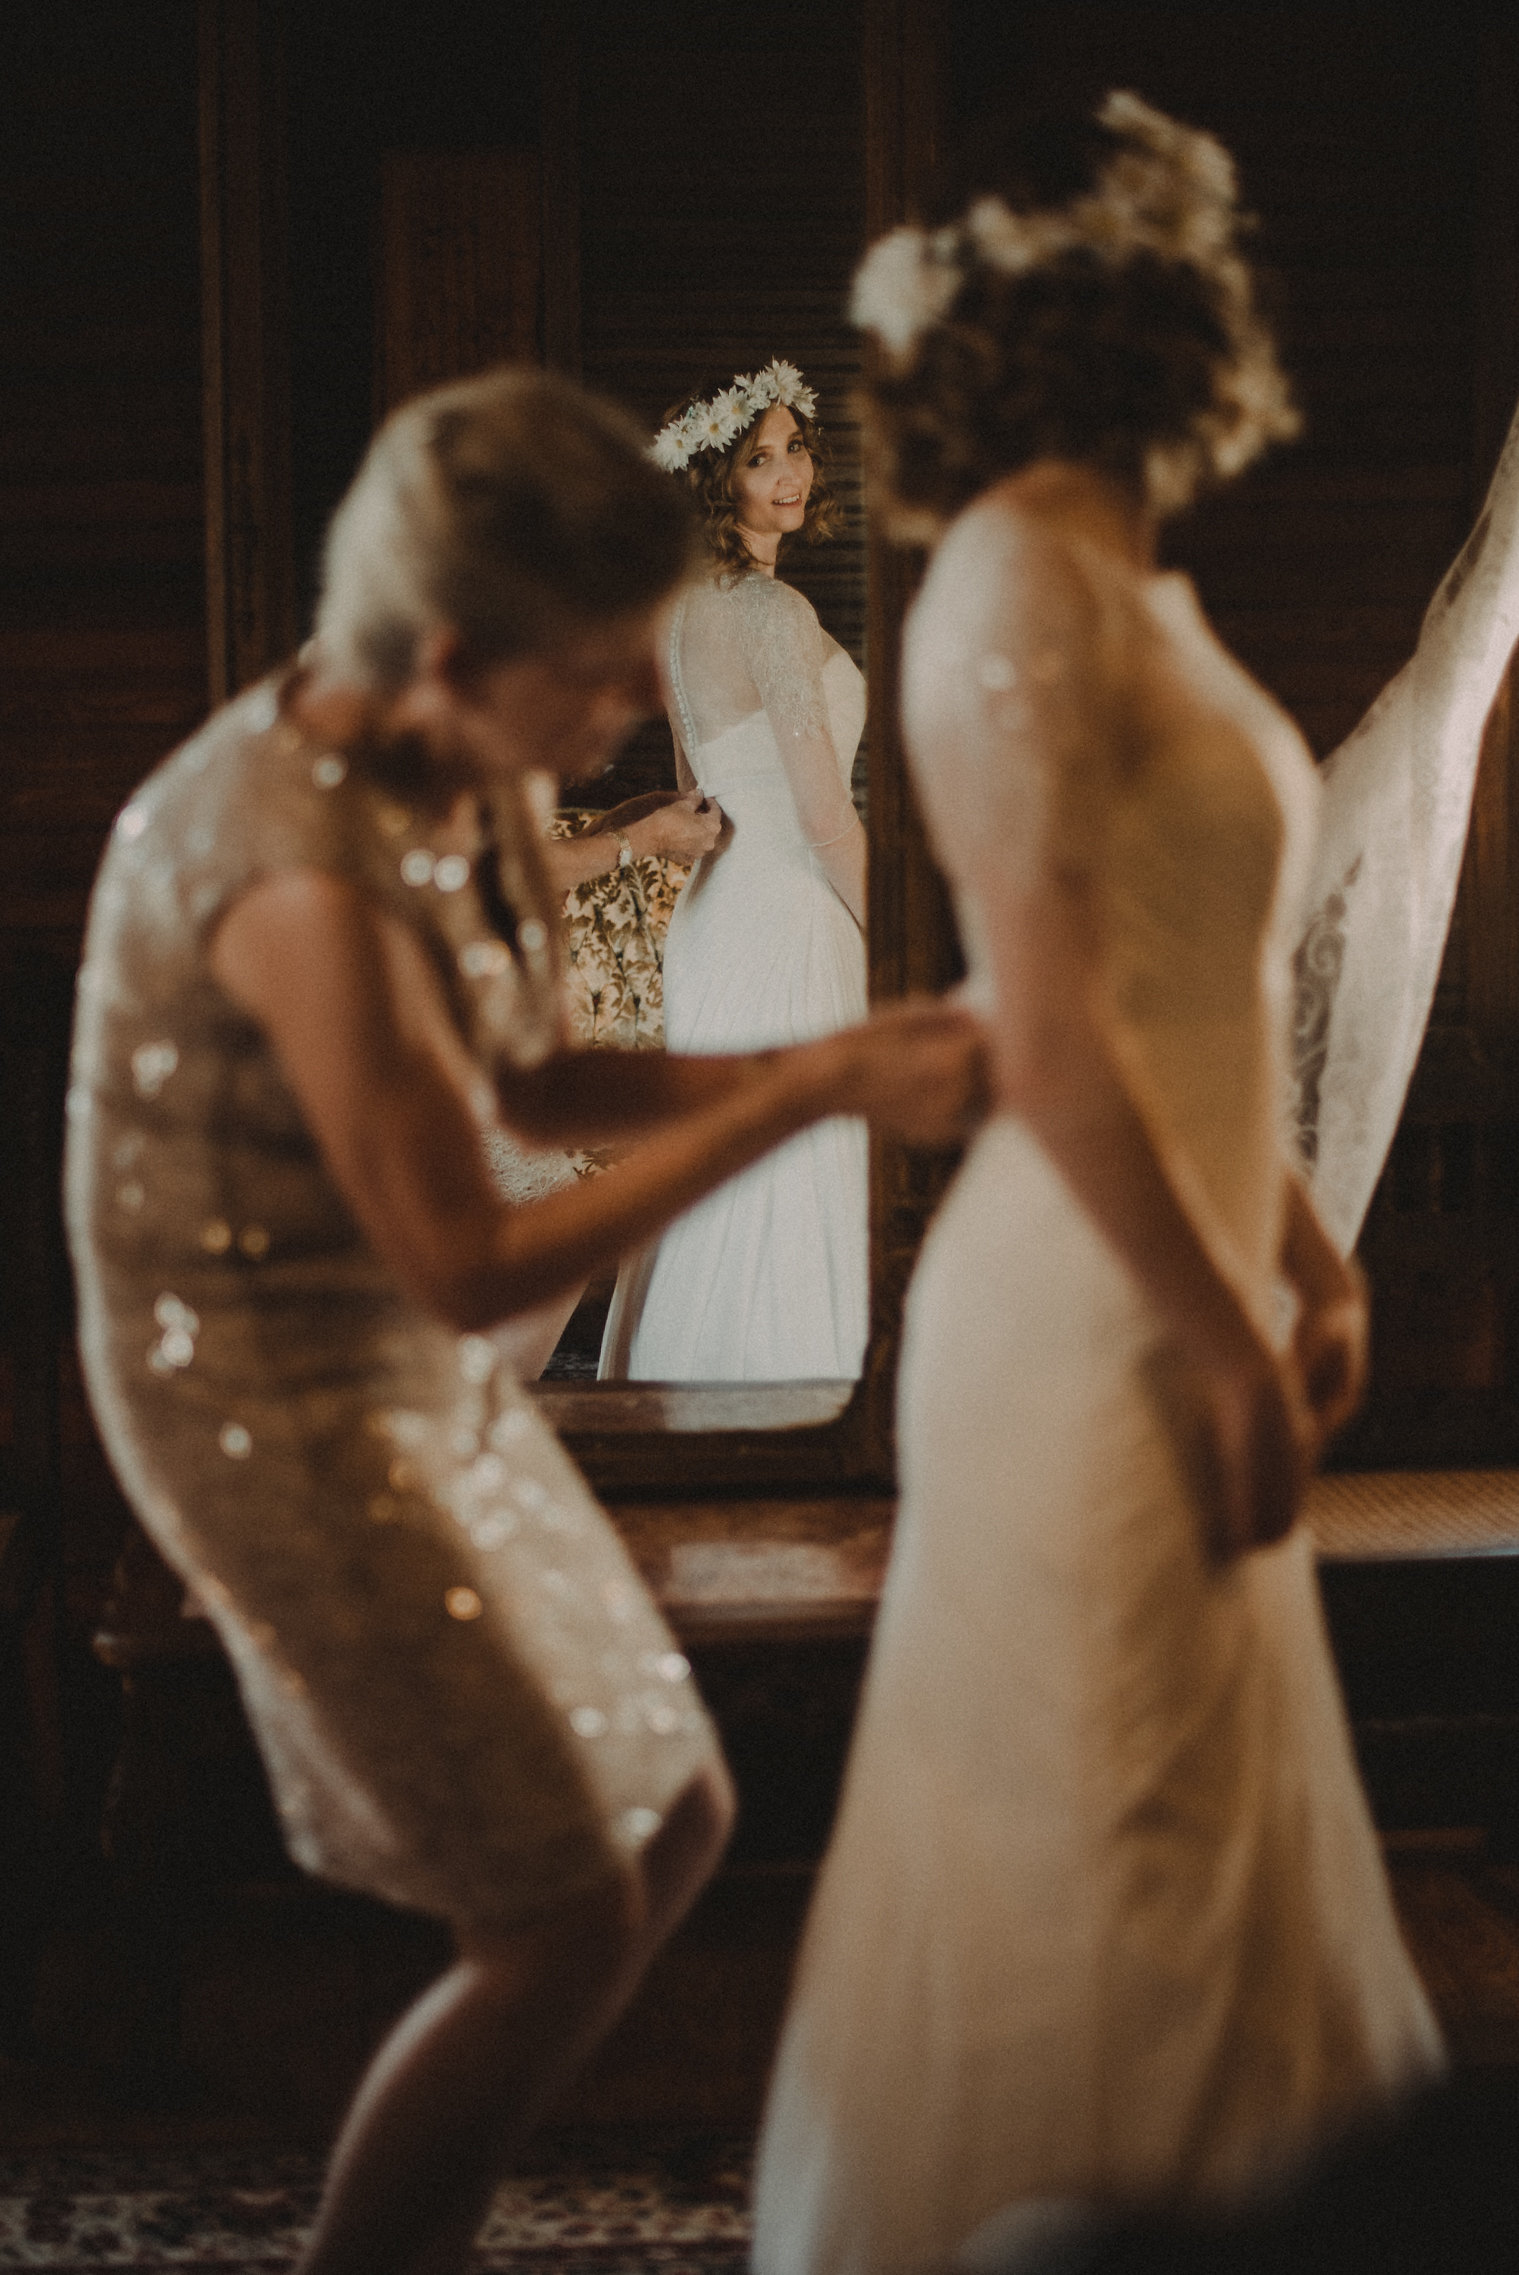 Bride getting dressed for wedding